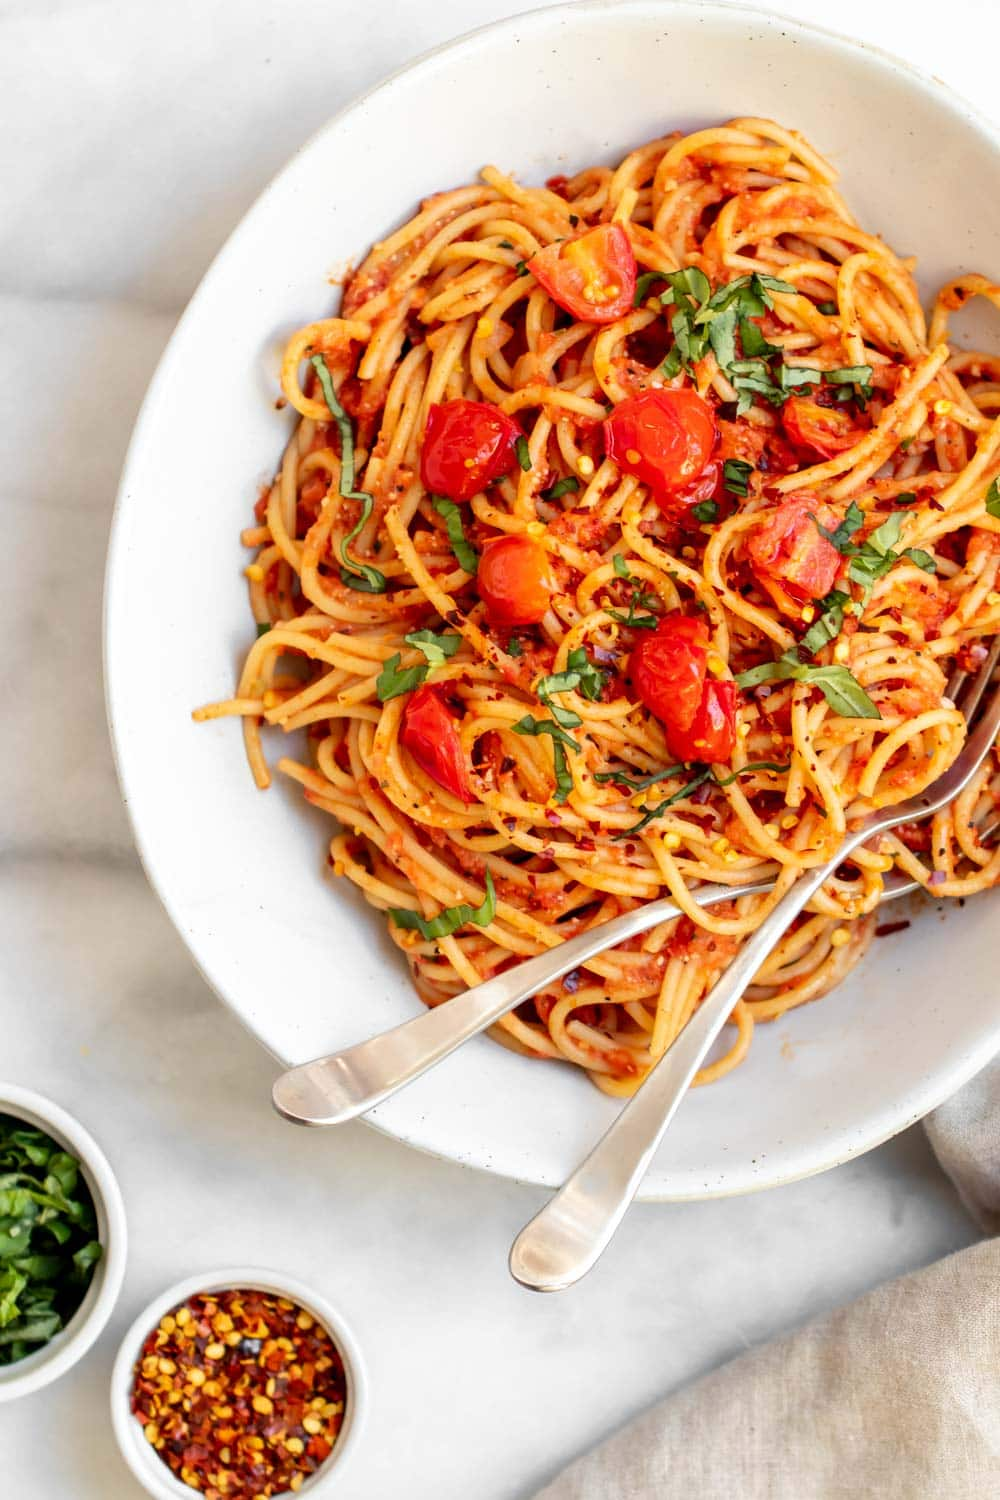 Vegan spaghetti sauce with fresh basil and red pepper flakes.